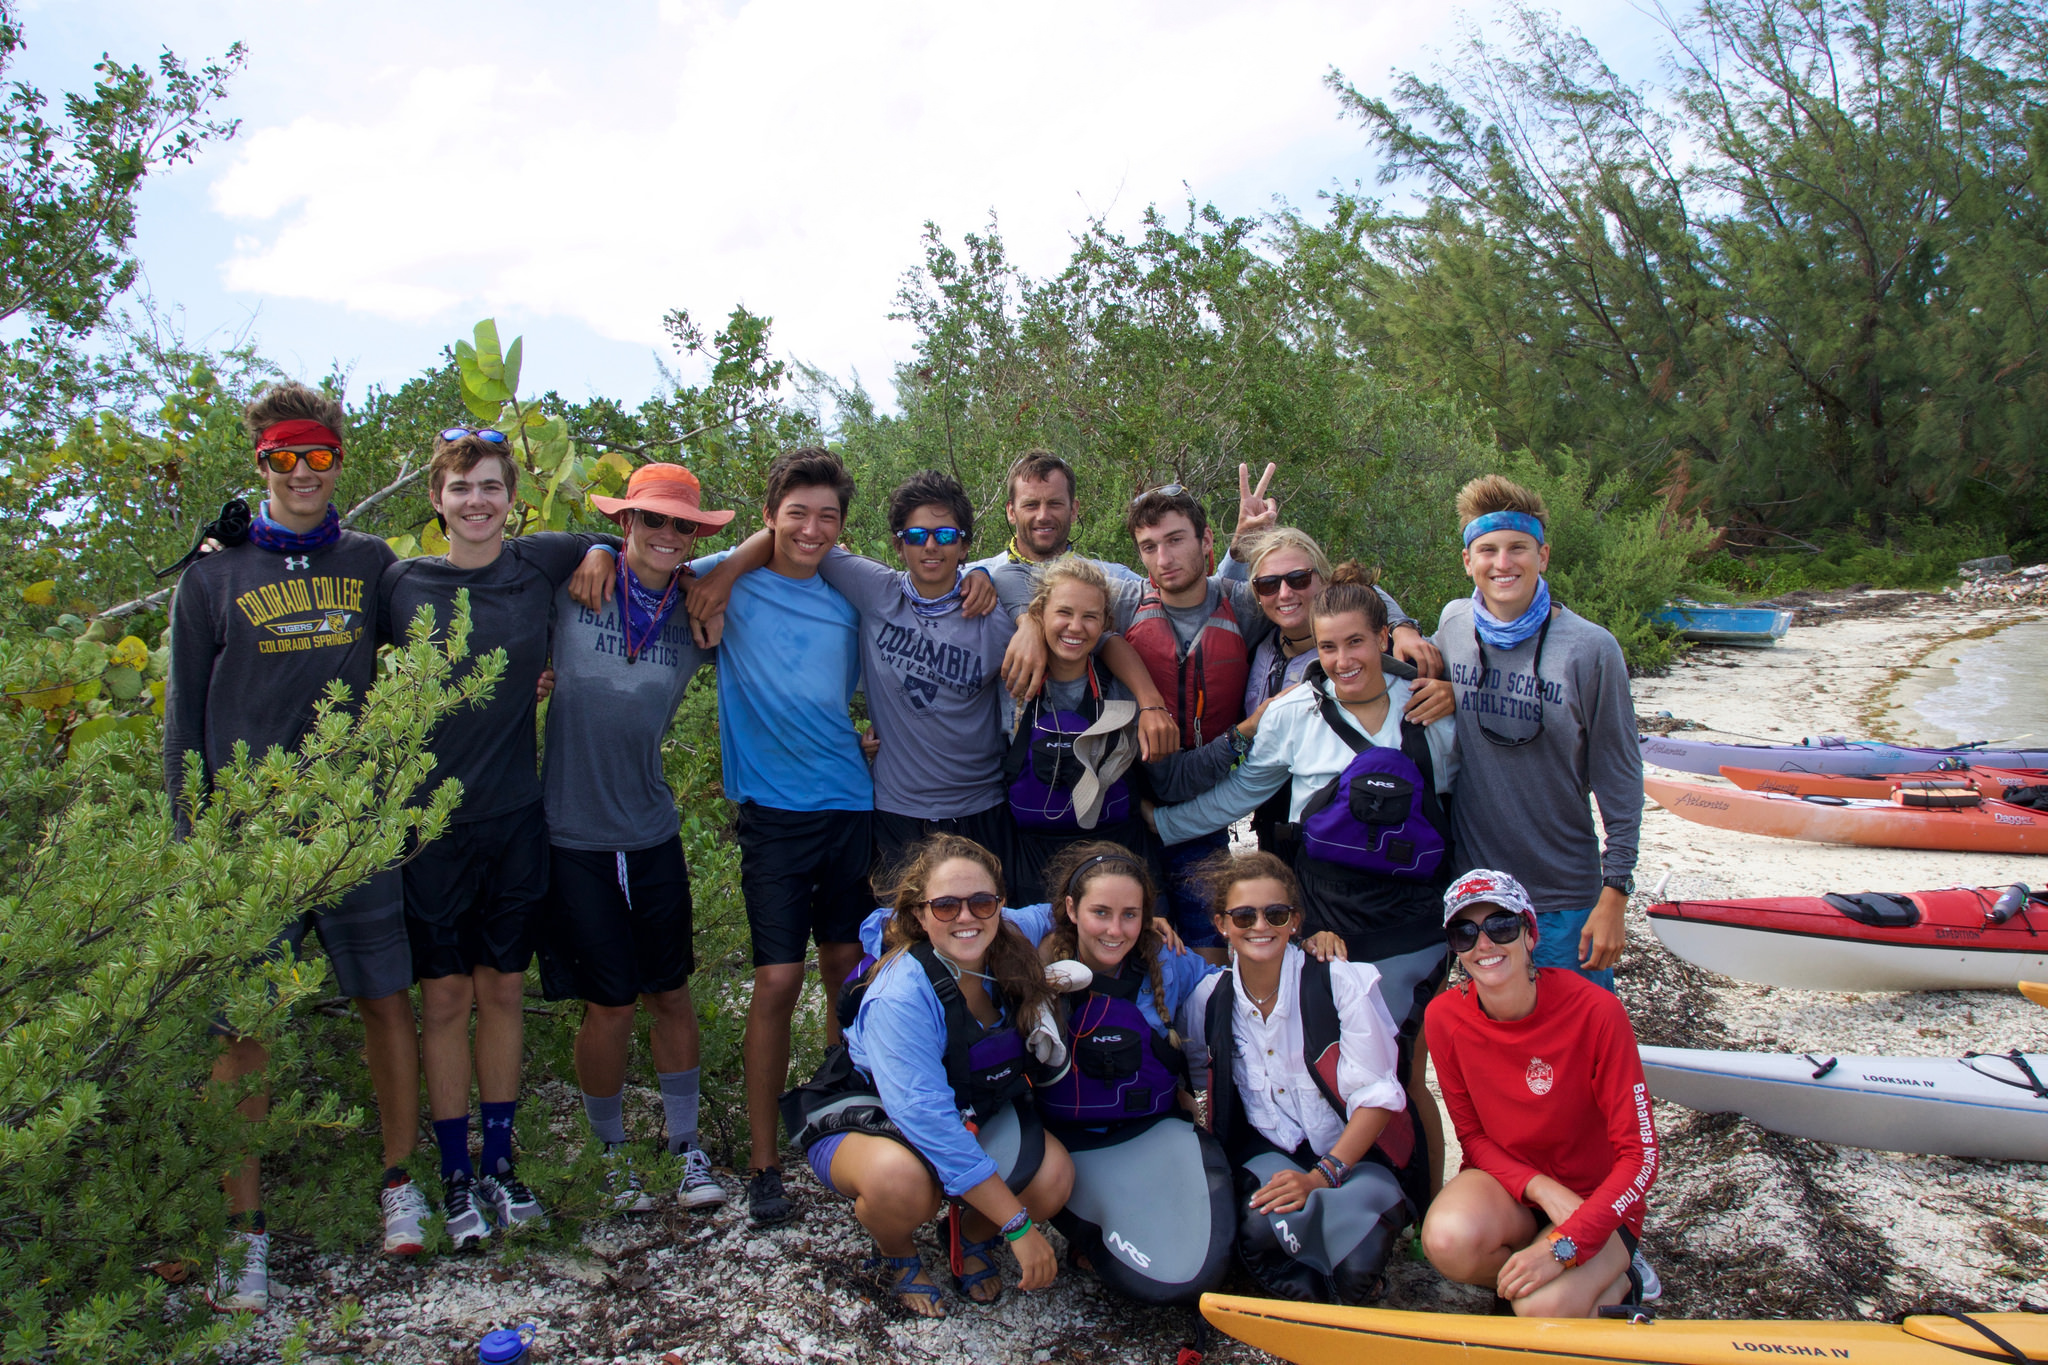 Kyra's kayak group after returning to campus